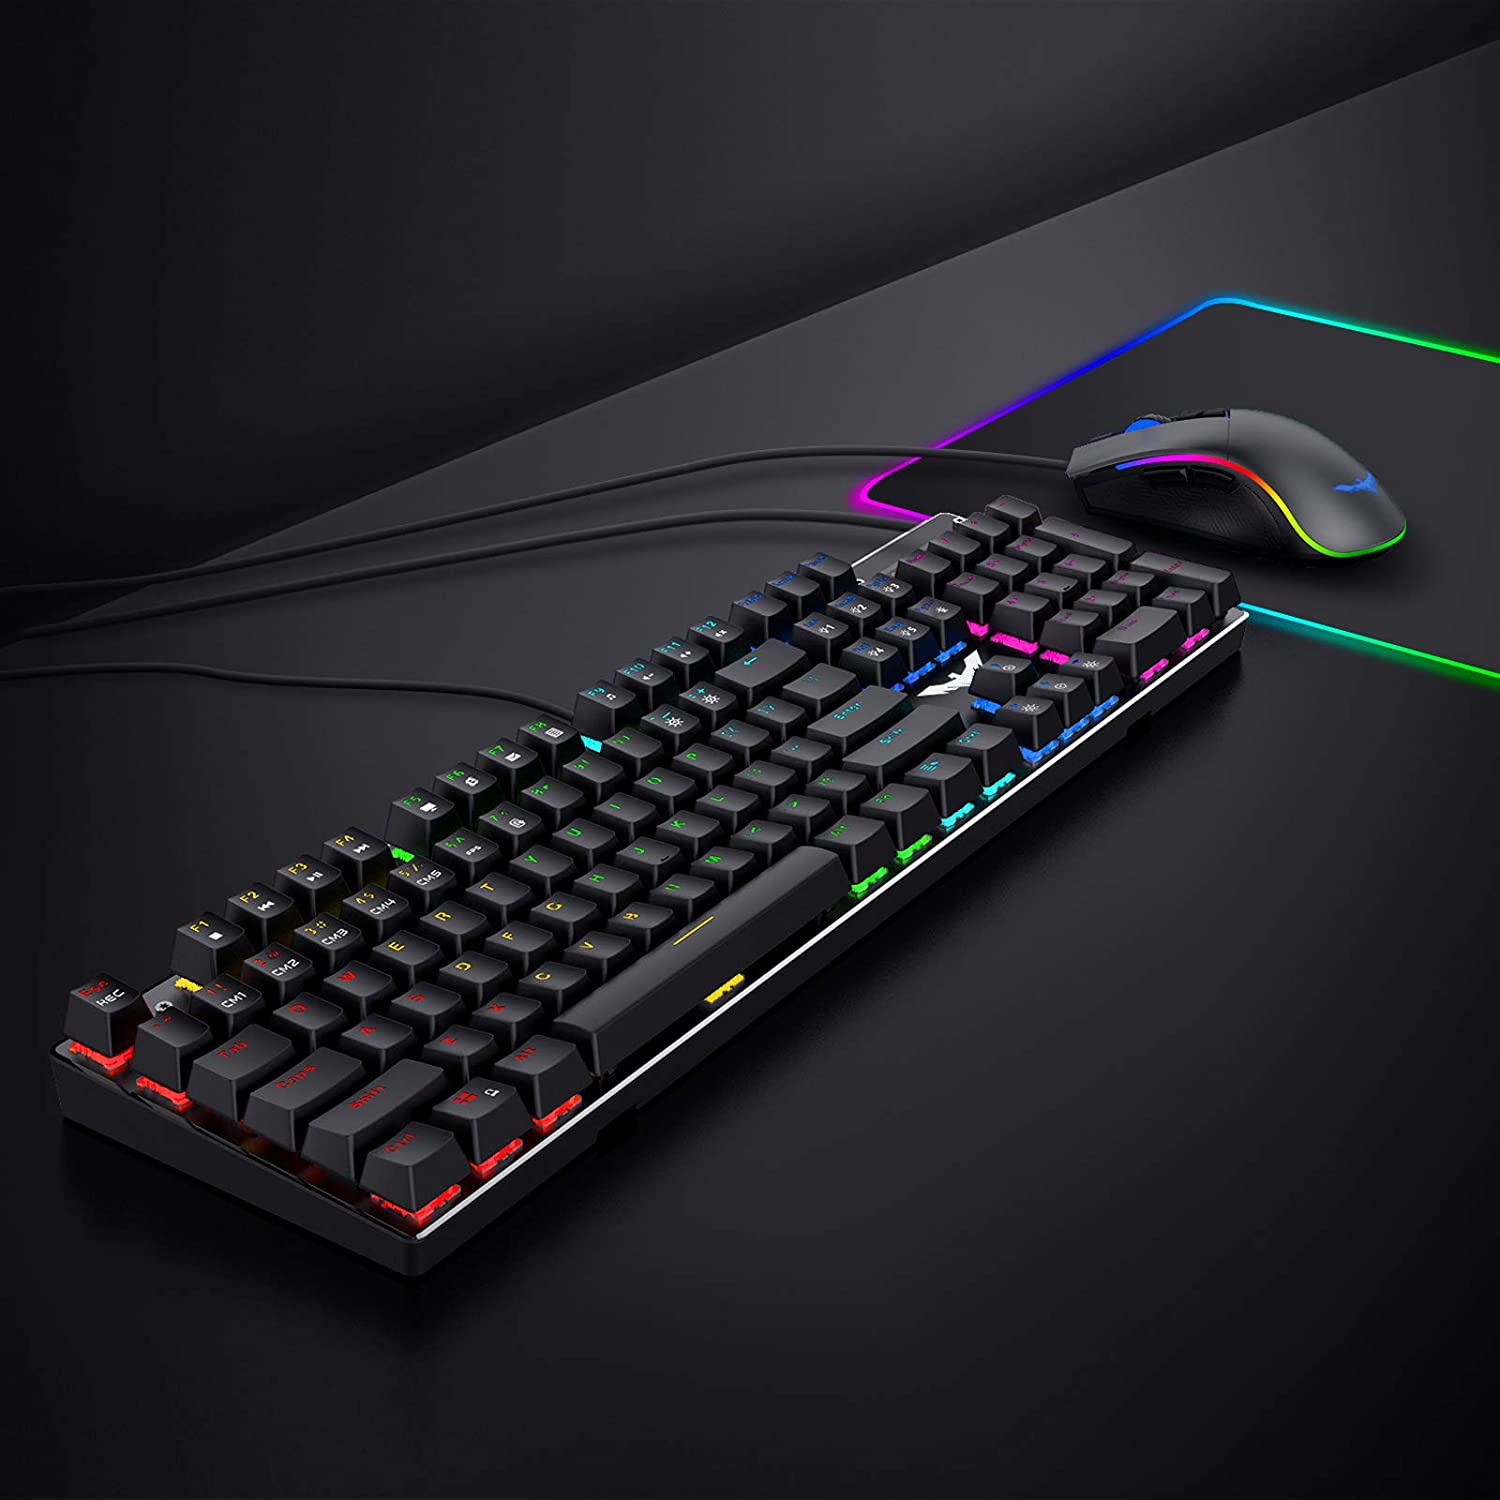 Affordable PC Gaming Keyboard and Mouse Combos